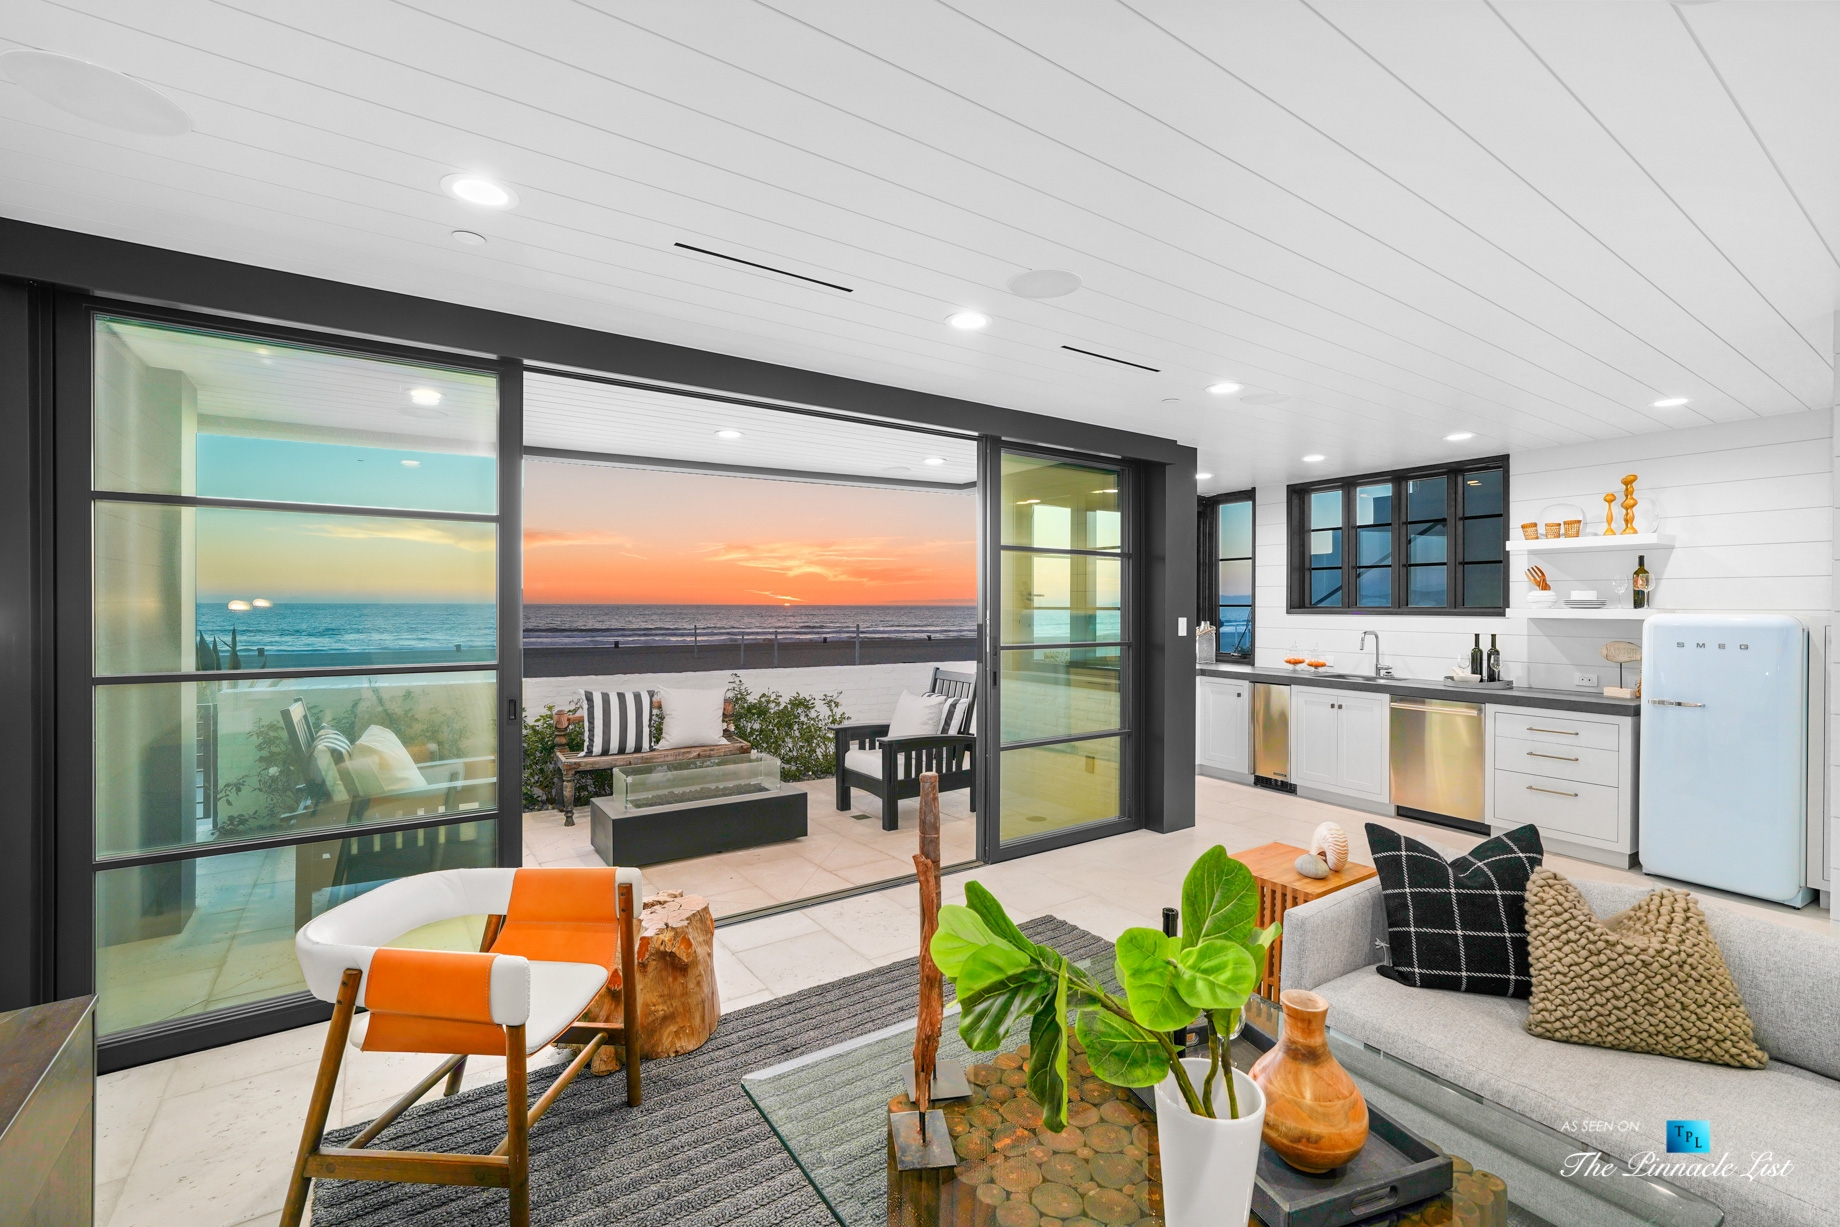 508 The Strand, Manhattan Beach, CA, USA - Twilight Downstairs Living Room - Luxury Real Estate - Oceanfront Home